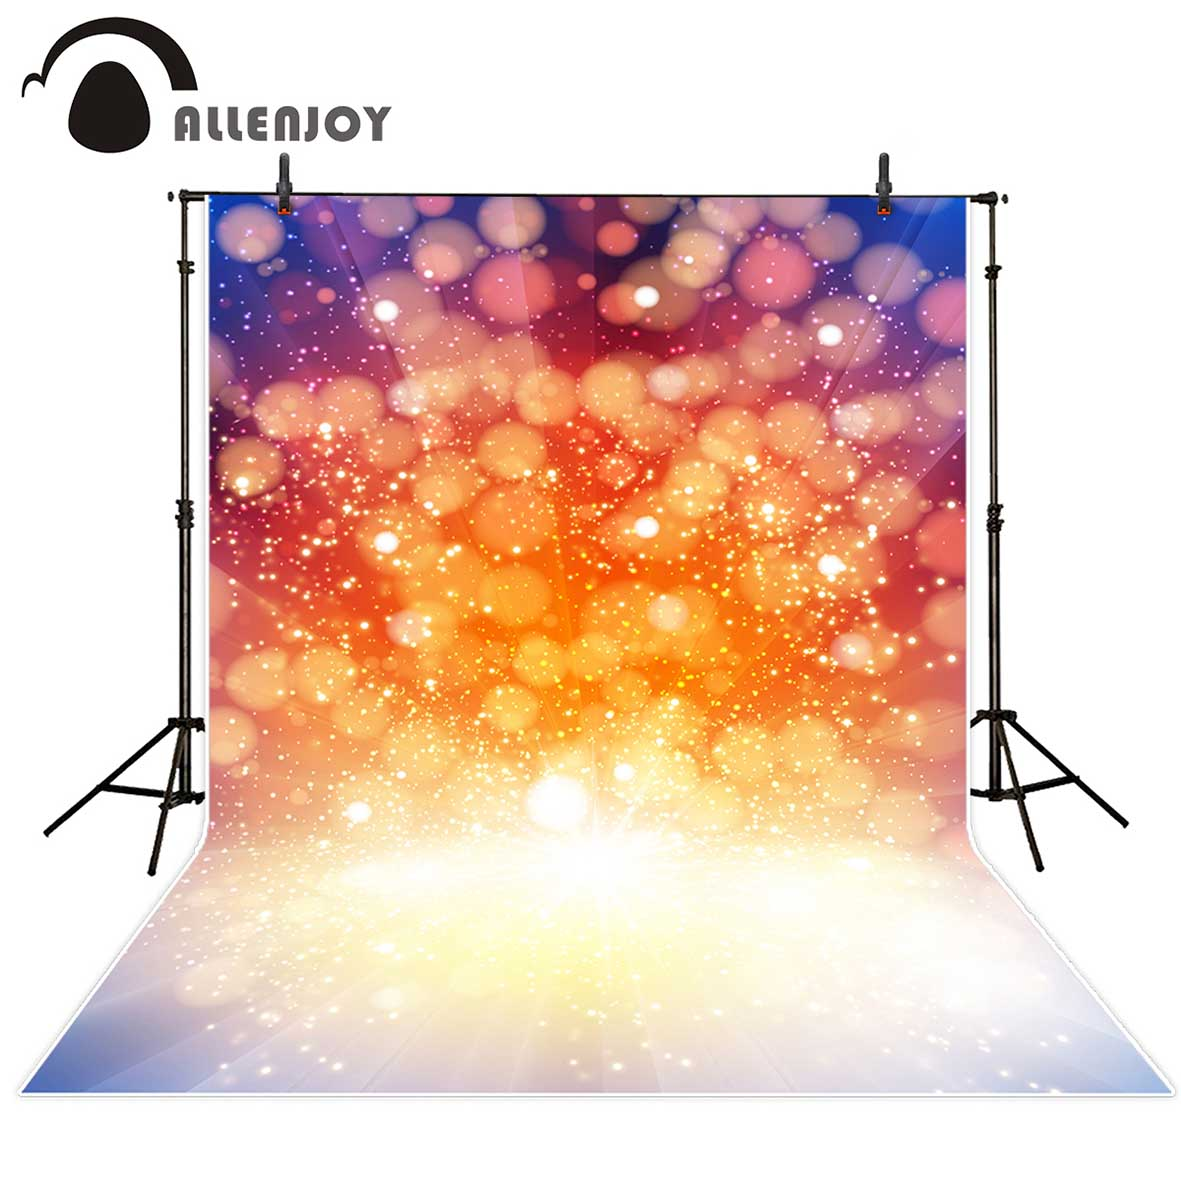 Allenjoy photography backdrops Orange bokeh shiny bubbles glitter Backgrounds for photographing Photo studio funds